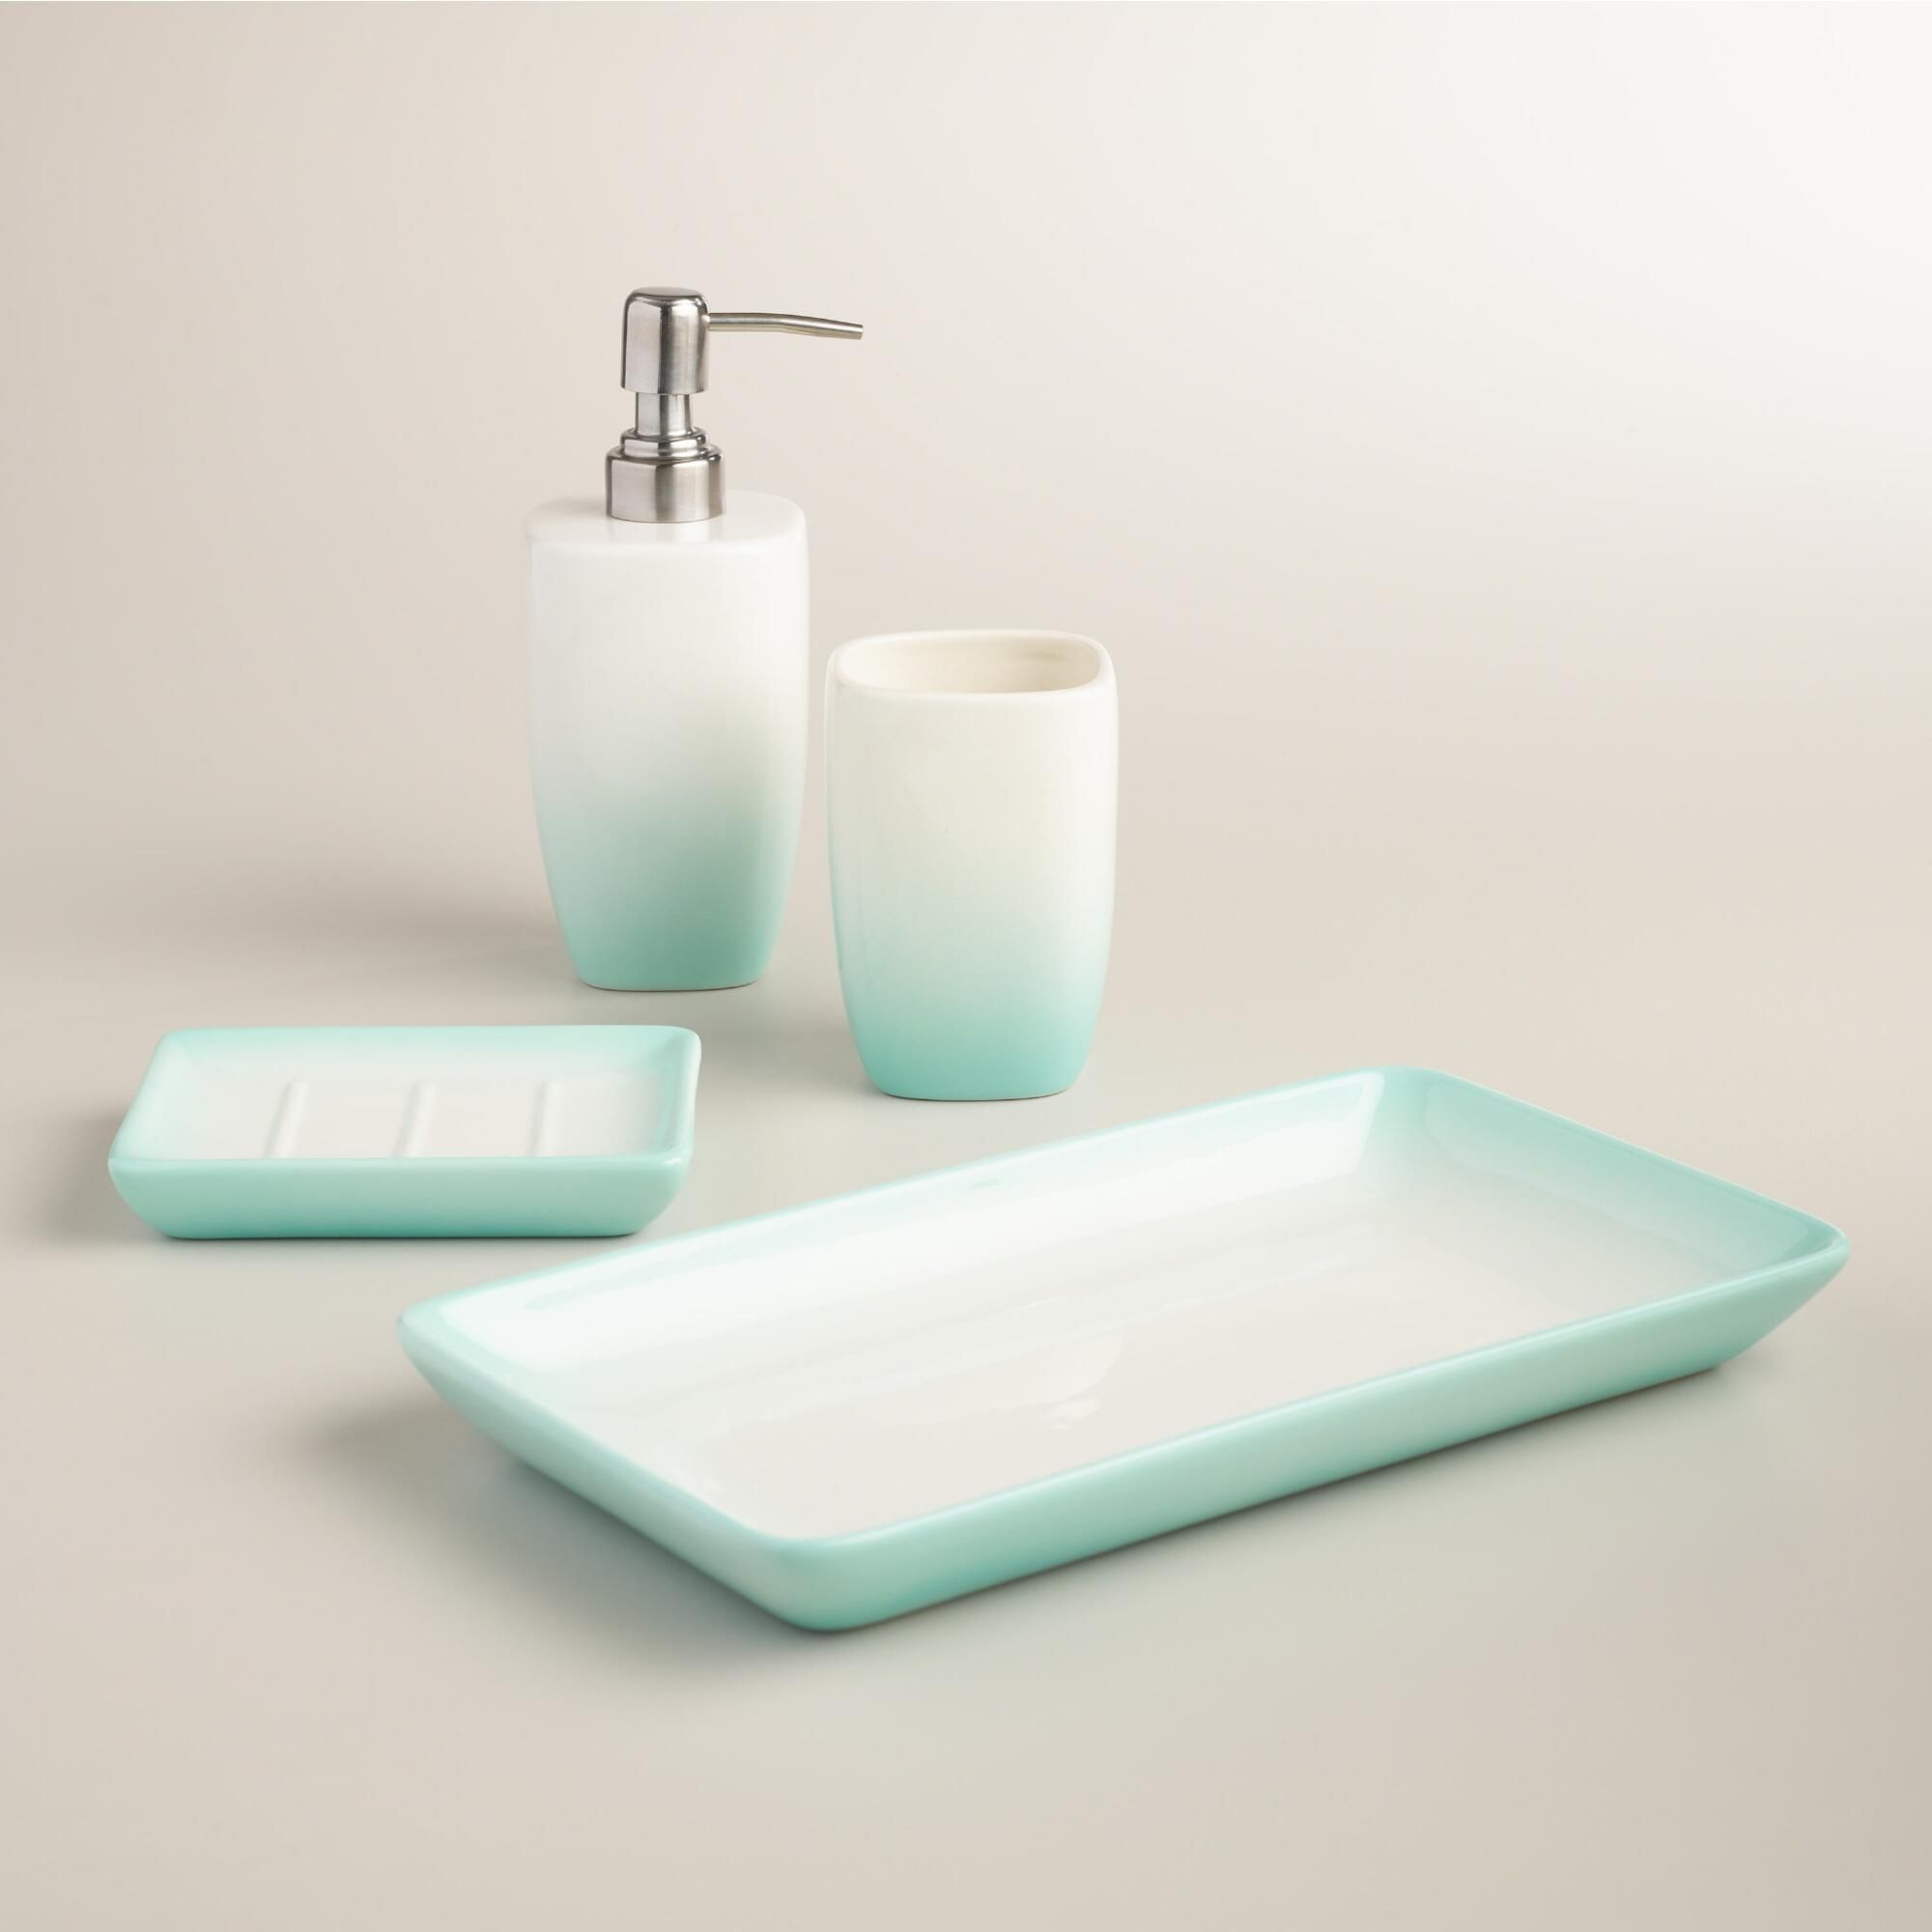 Aqua ombre ceramic bath accessories collection world for Aqua bath accessories